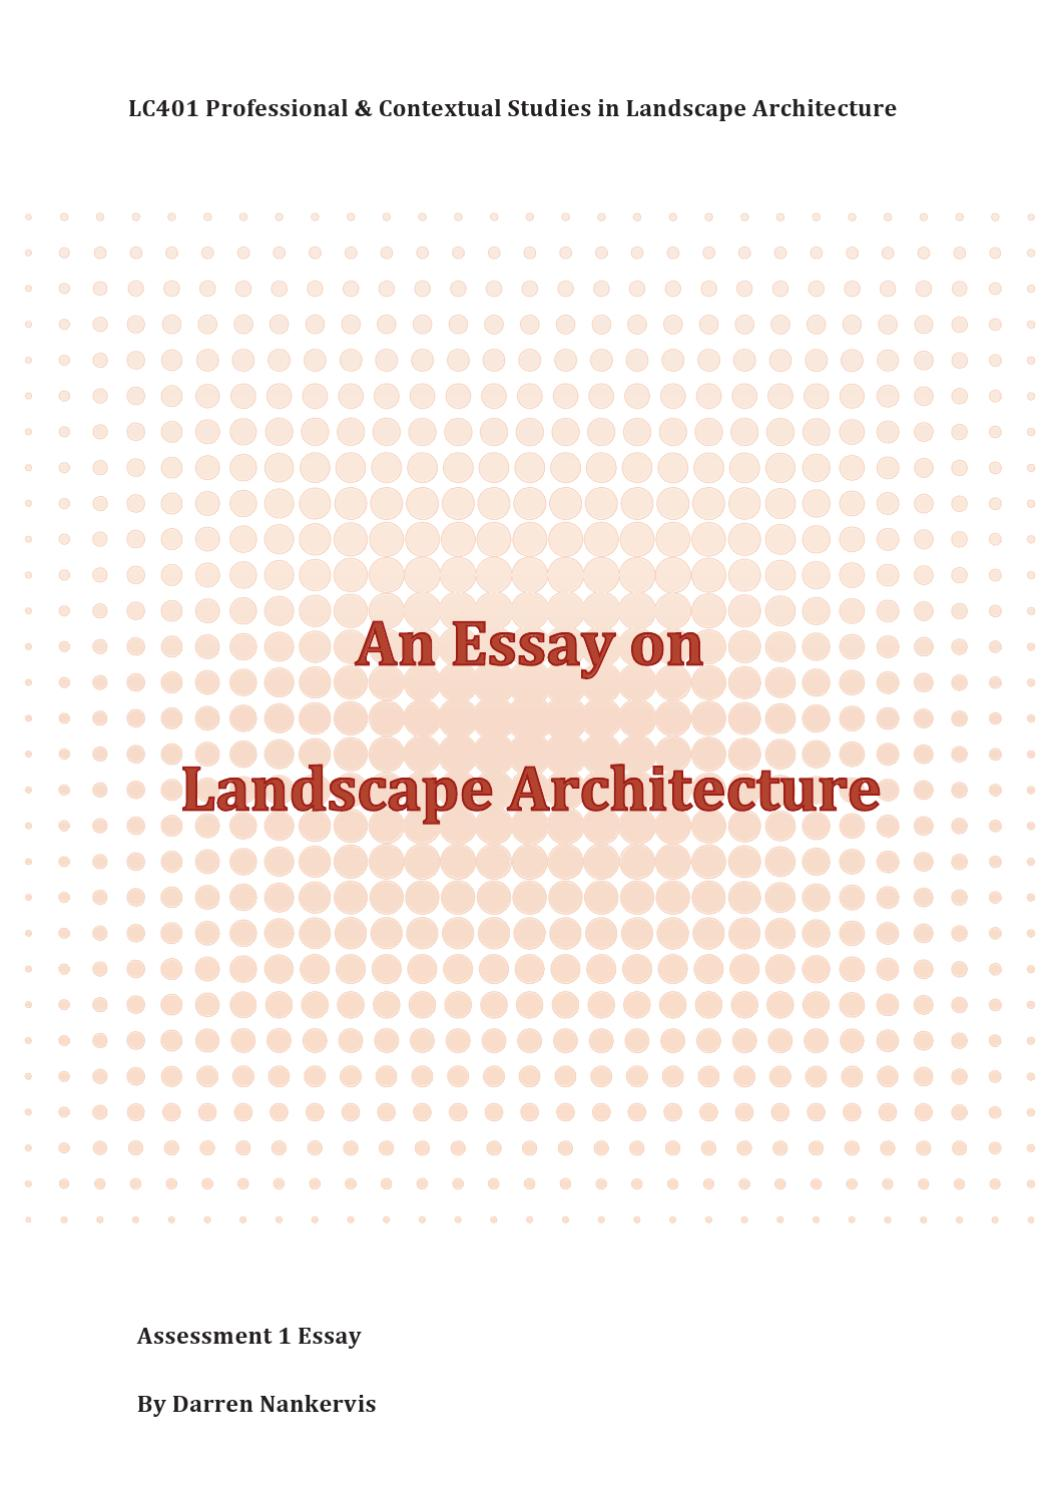 007 Landscape Architecture Essay Example Page 1 Stunning College Argumentative Full